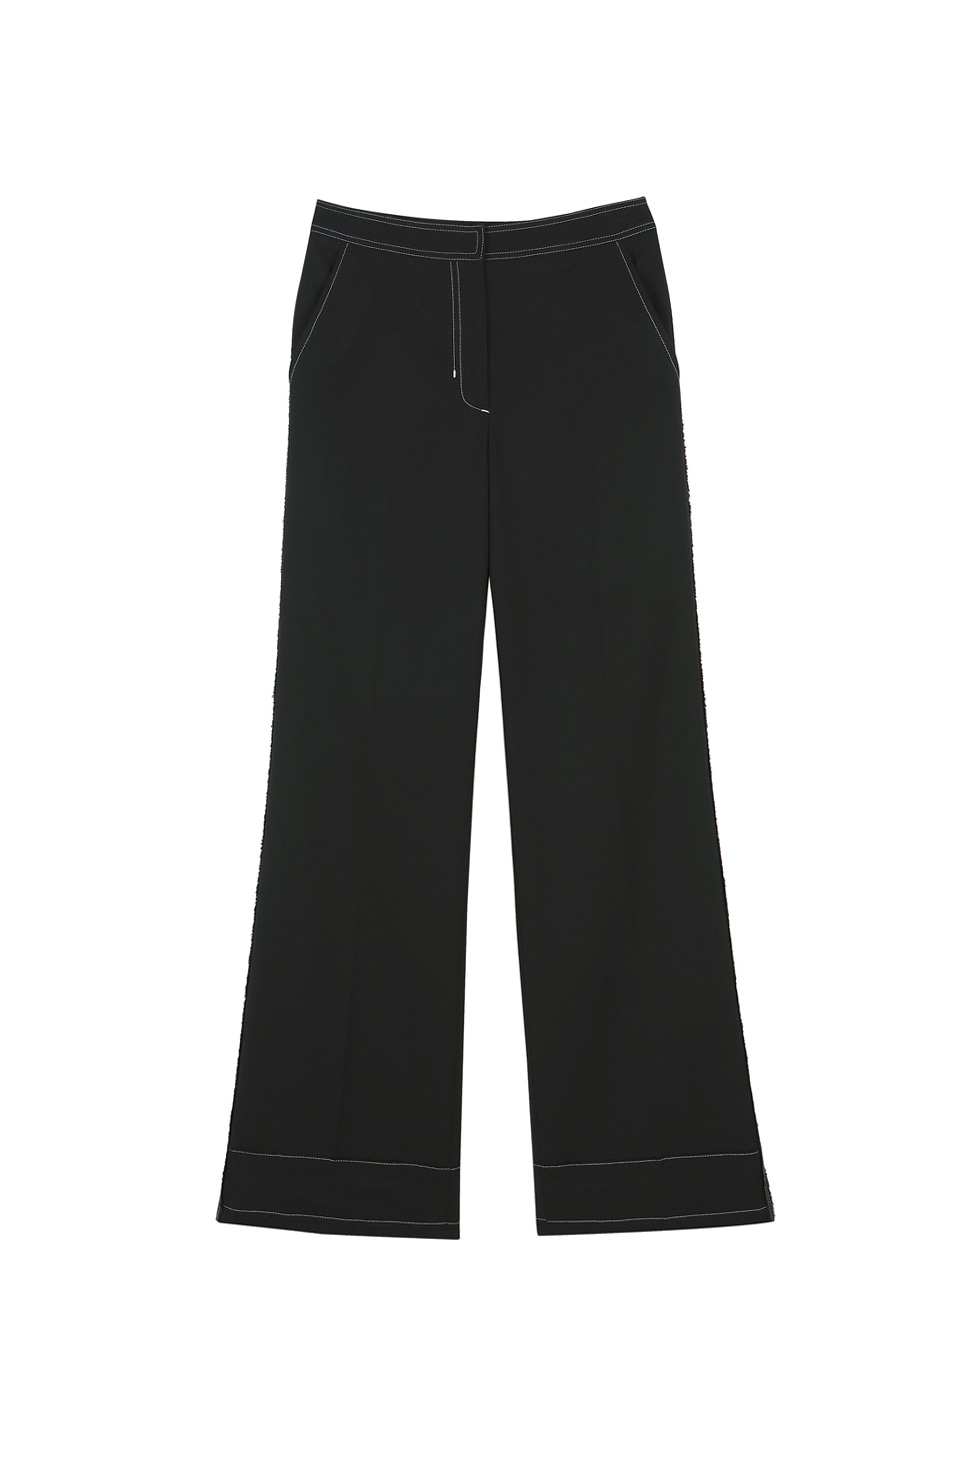 STITCH PANTS - BLACK